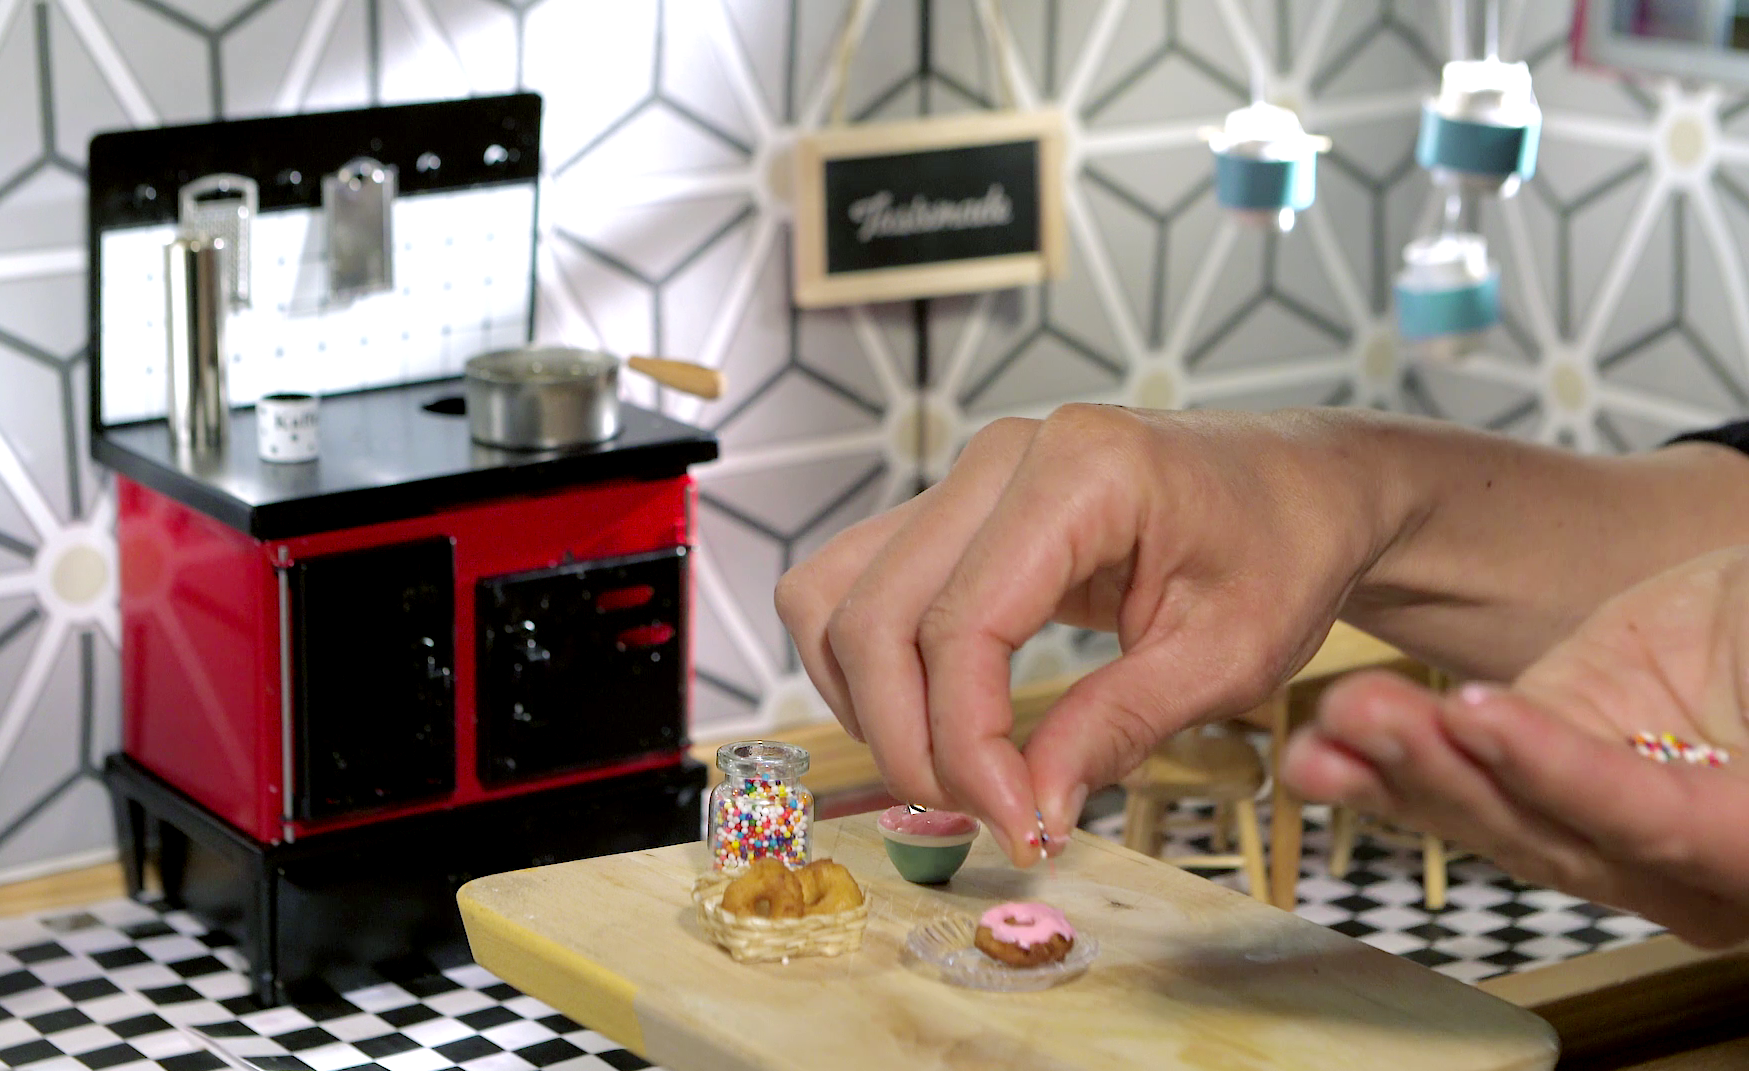 Tiny Kitchen Videos Cook Up Real Food In Doll Sized